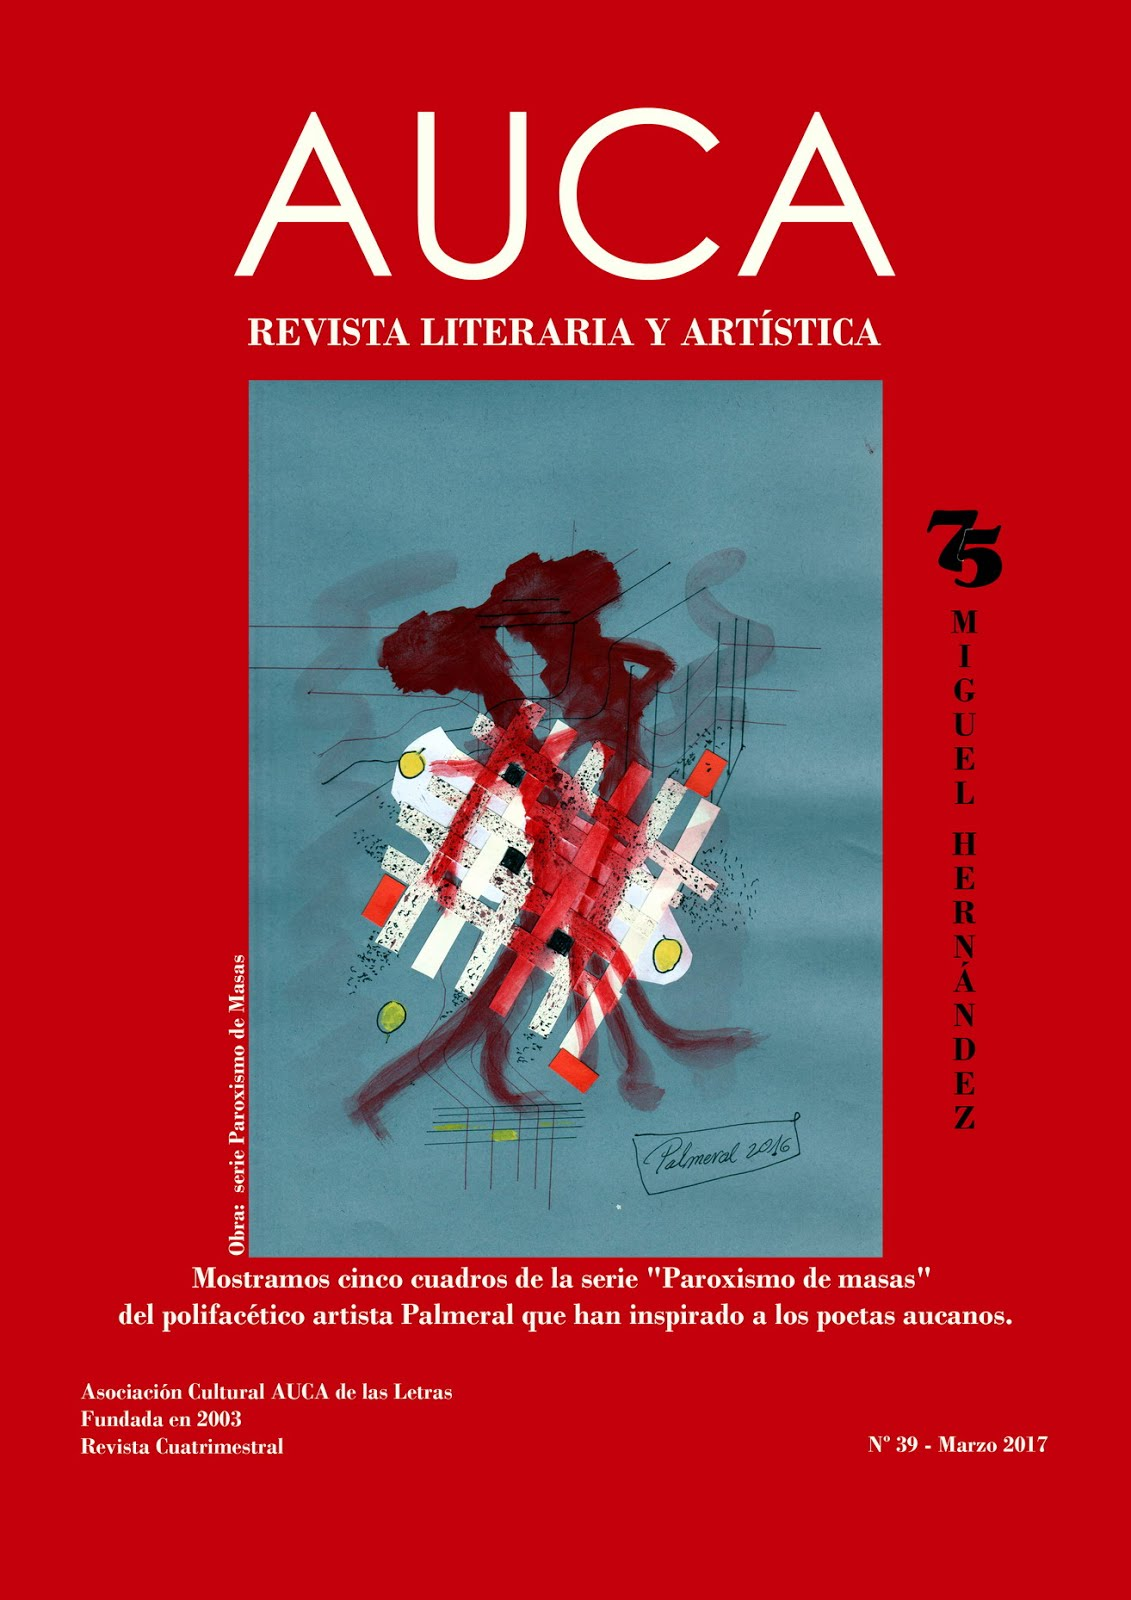 La revista AUCA de Alicante